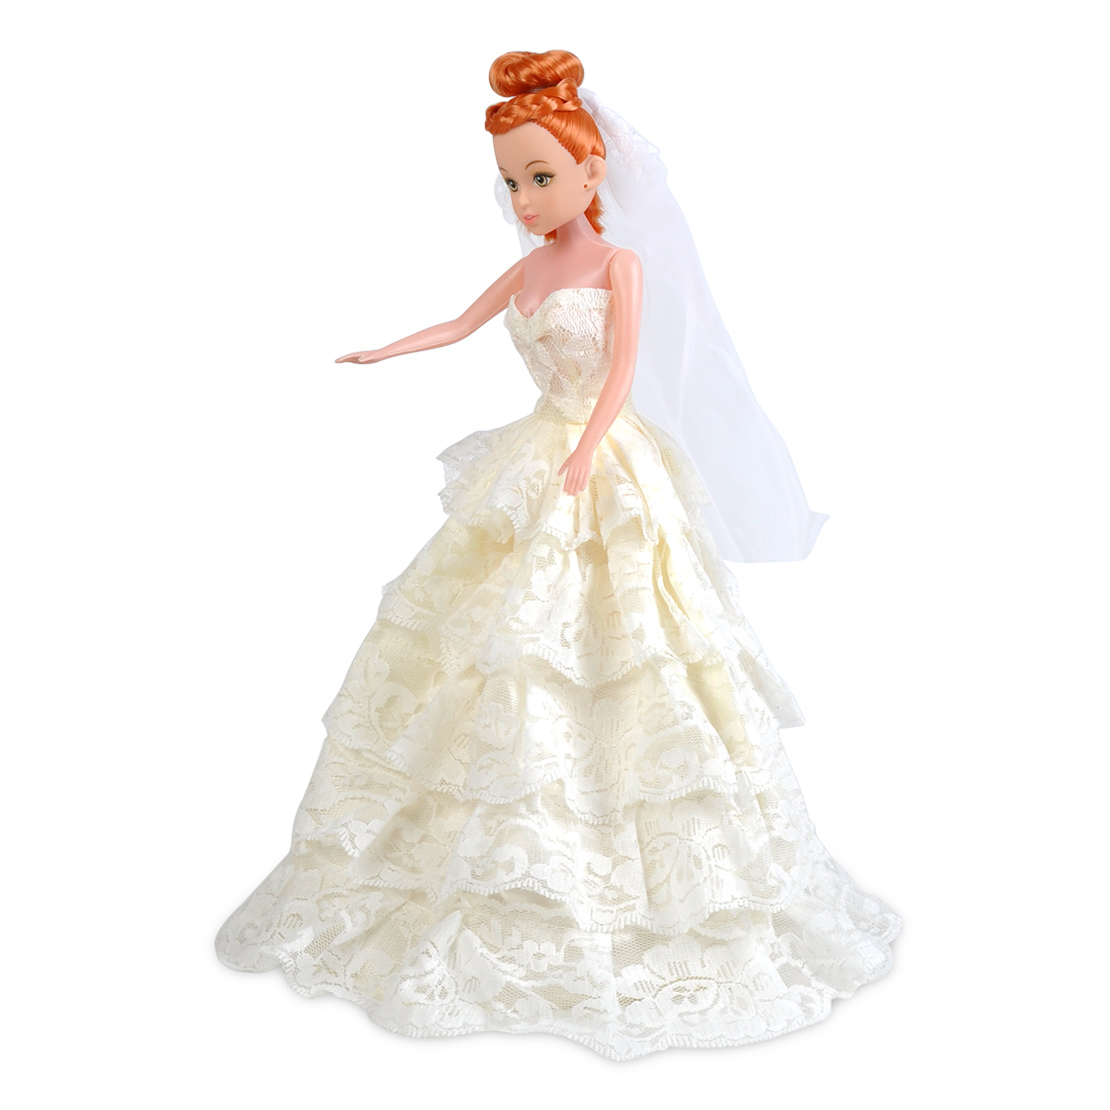 Bridal party dress wedding gown embroidery dress veil for Wedding dresses for barbie dolls